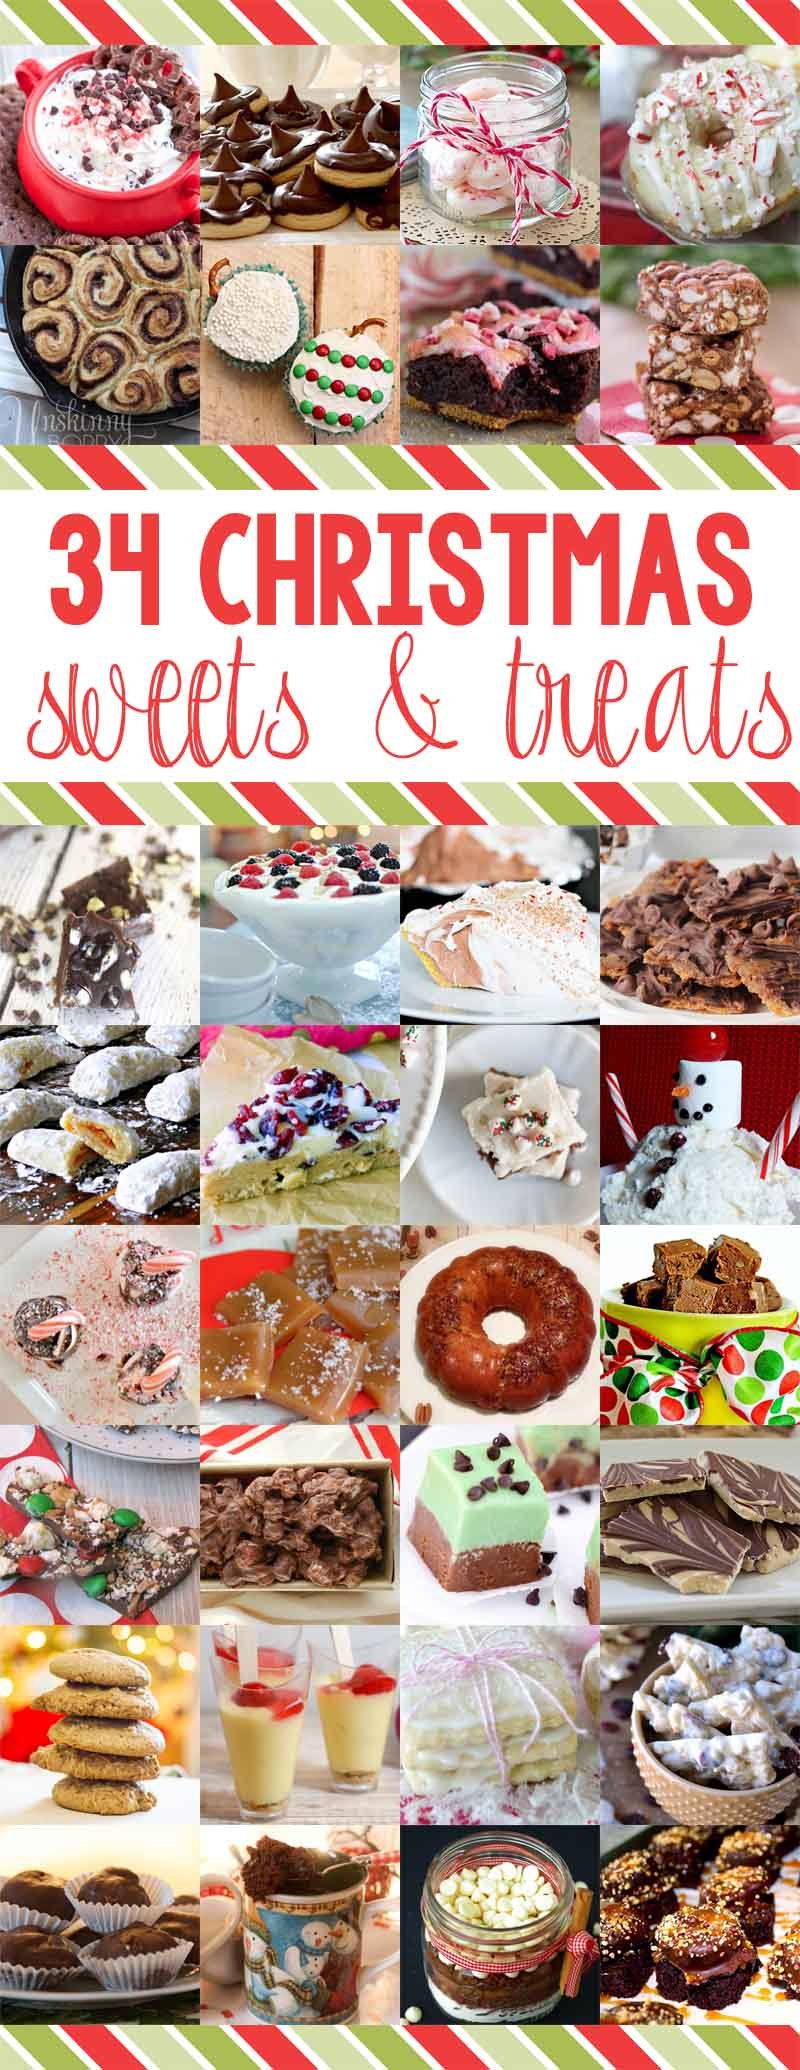 Must make! 34 Christmas Baking Ideas: 34 Delicious Sweets and Treats Recipes to satisfy your family's sweet tooth! Great food gift ideas too! You can bake up a storm with these YUMMY holiday desserts, squares, candy and cookie recipes!